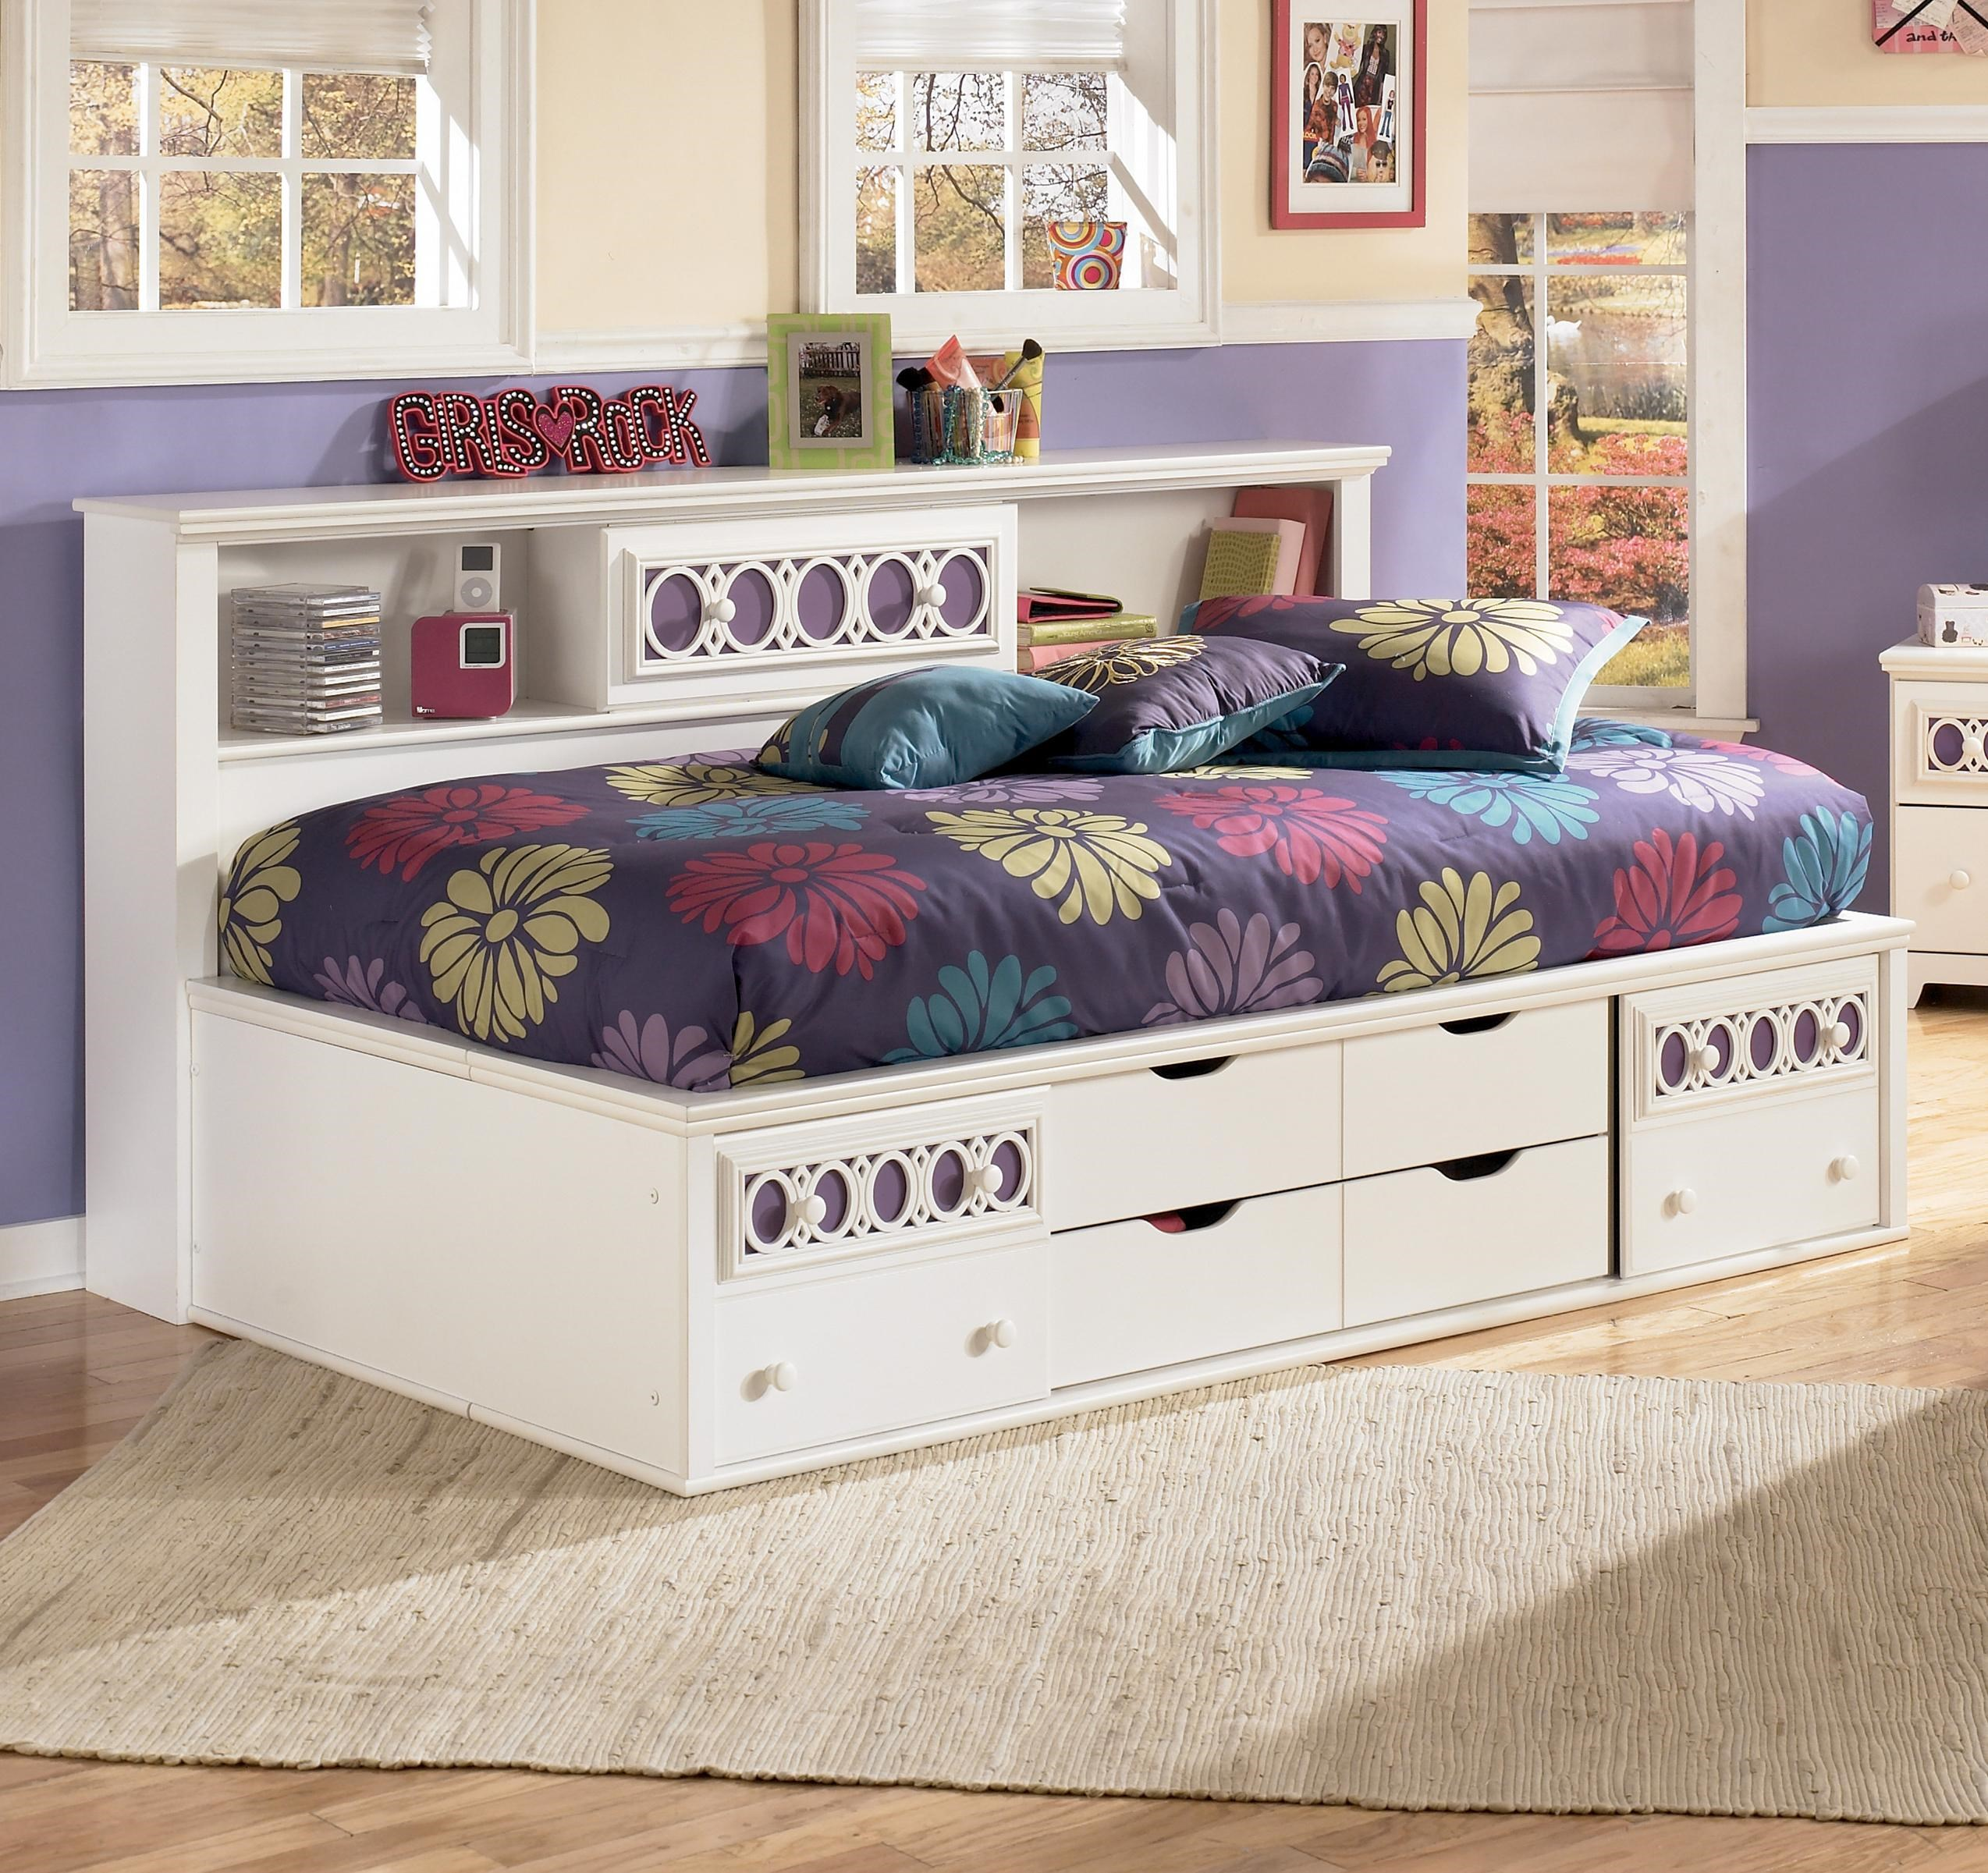 zayley twin bedside bookcase daybed with customizable color panels by ashley furniture signature design at del sol furniture